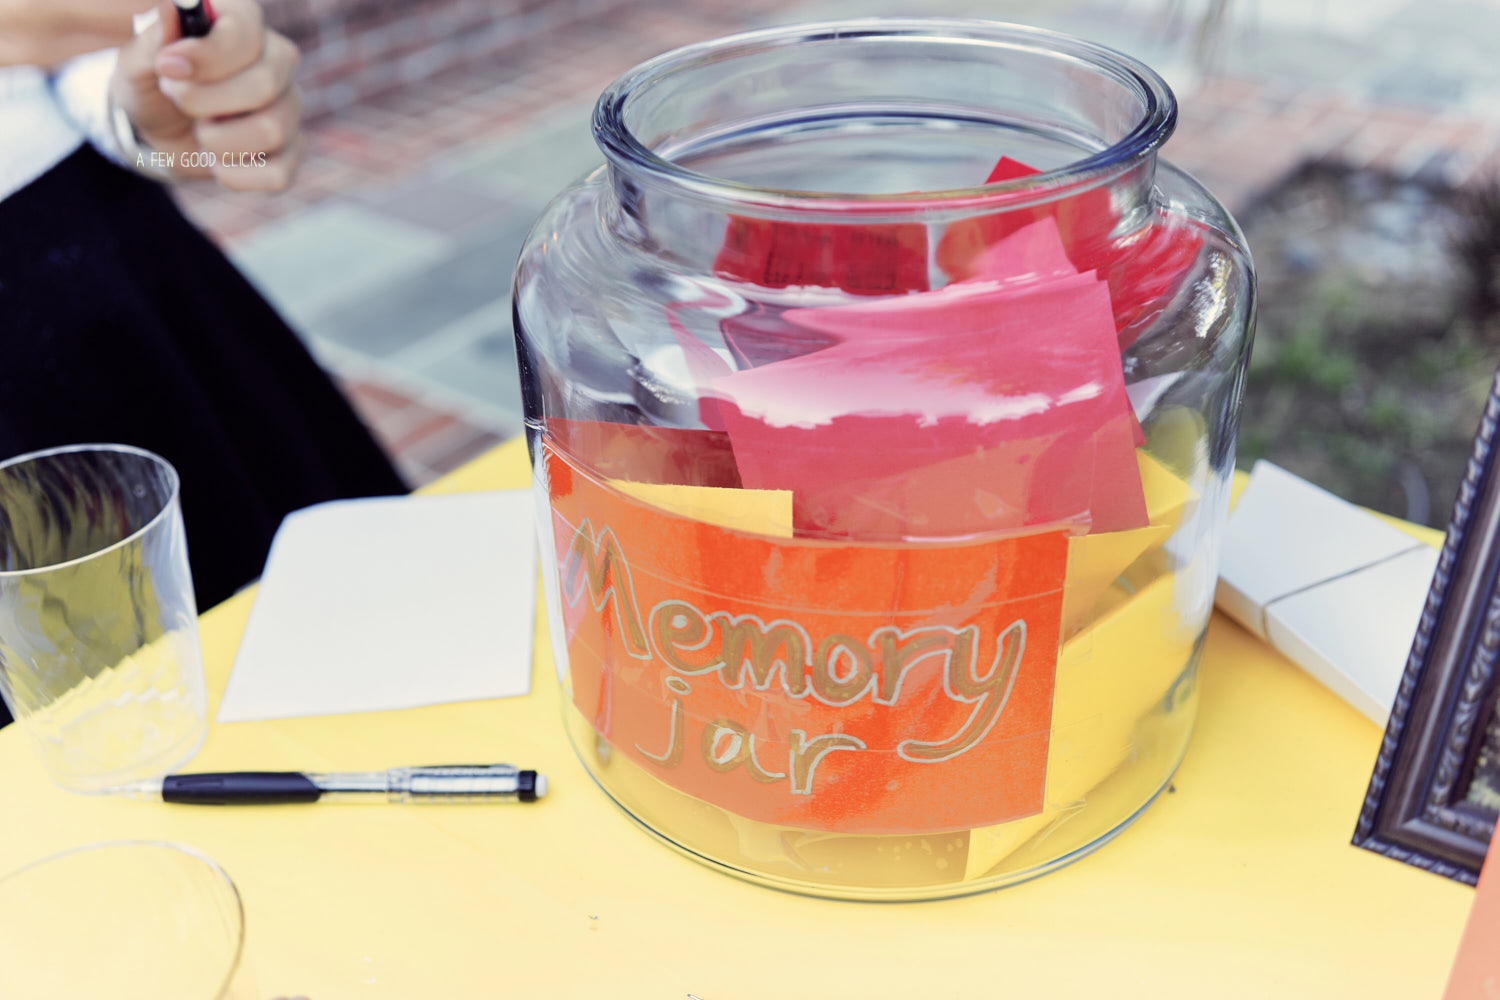 Here is the memory jar you need for your event.